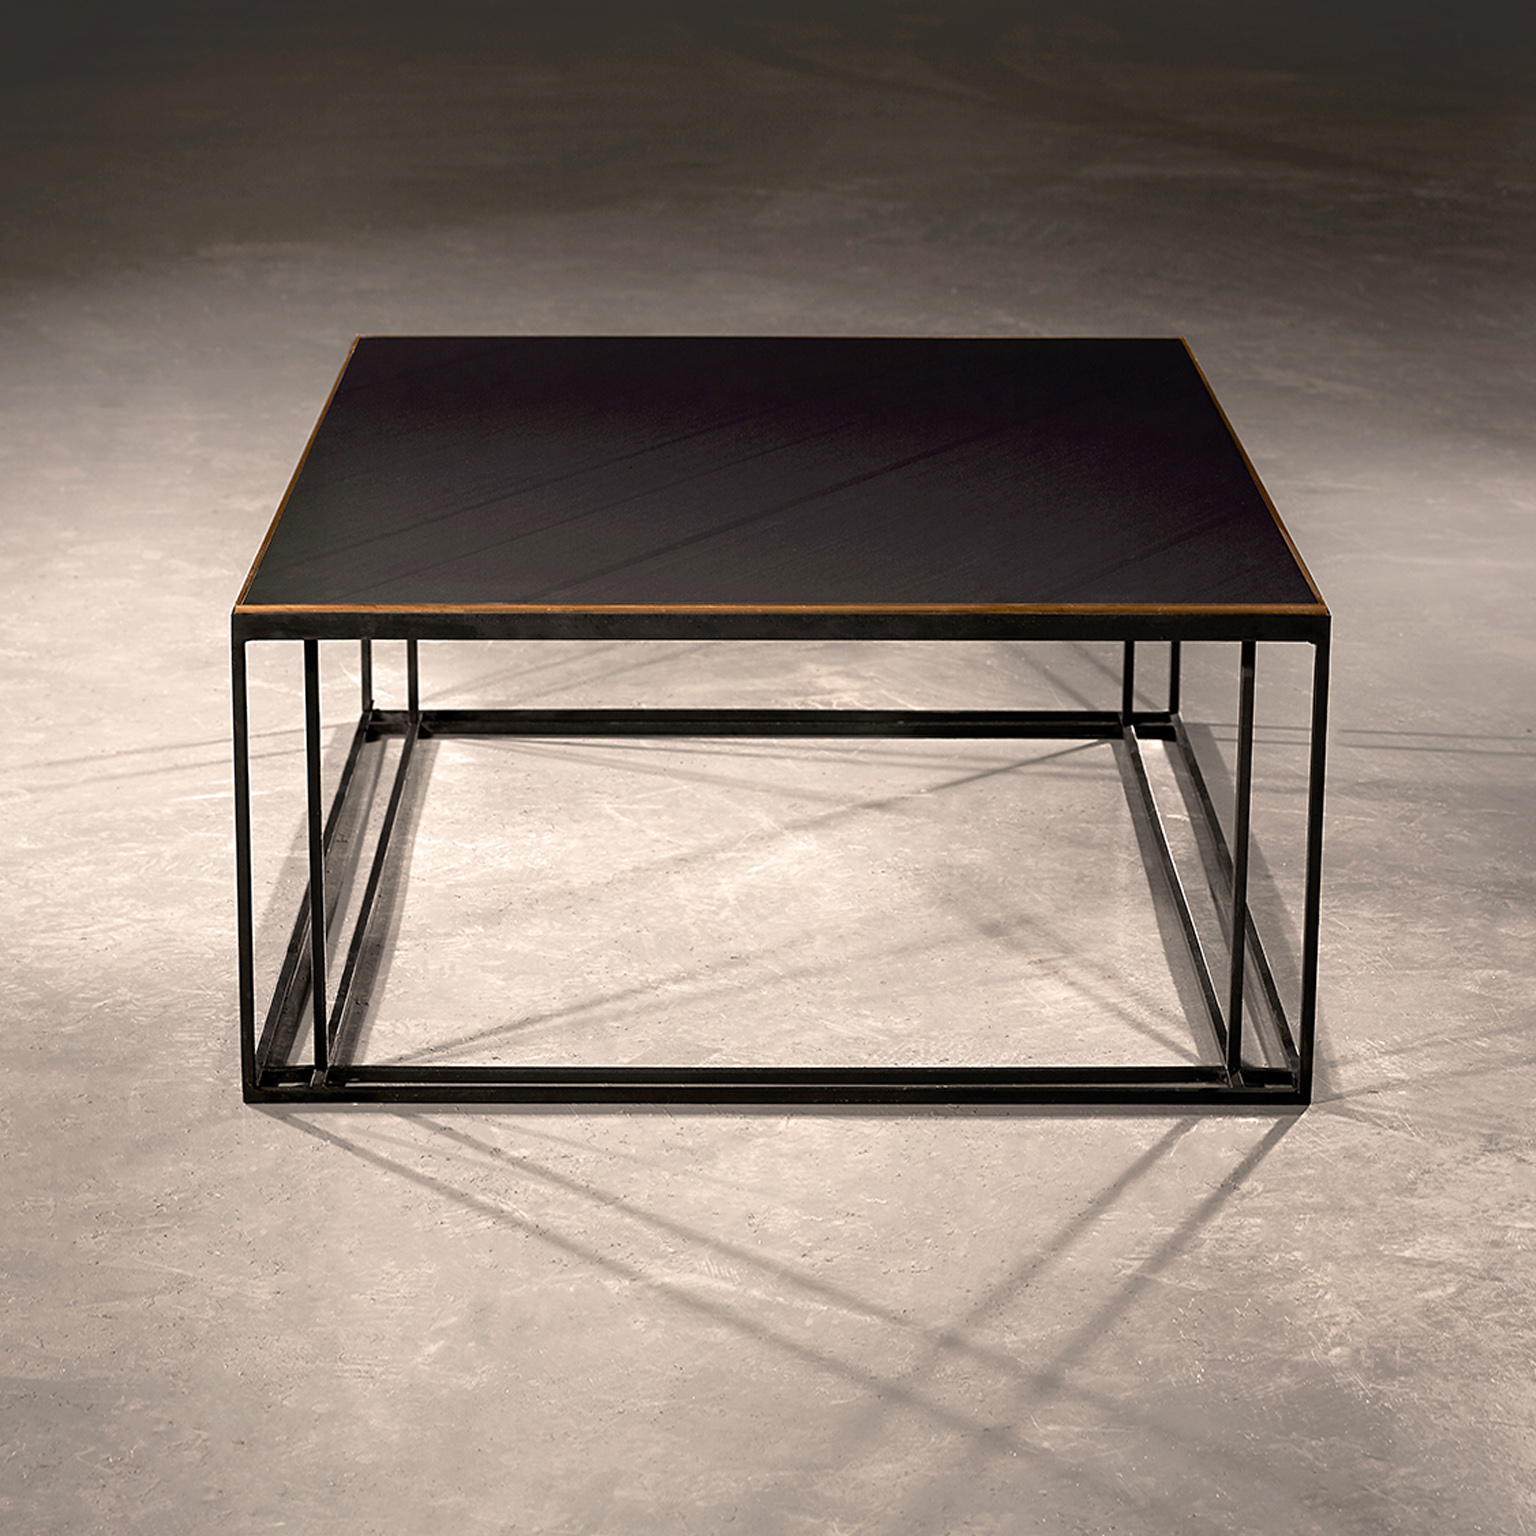 Slate Binate Coffee Table - This coffee table is the perfect height to be in the centre of a lounge or living room or in a casual commercial area. The choice of finishes means that you can choose the best one to suit your space. The frame is Blackened Steel and the Top is honed Cumbrian Slate, with a Polished Brass Trim. This table is hand made and crafted in the North of England to order. Custom sizes and finishes are available.</p>    Matter of Stuff